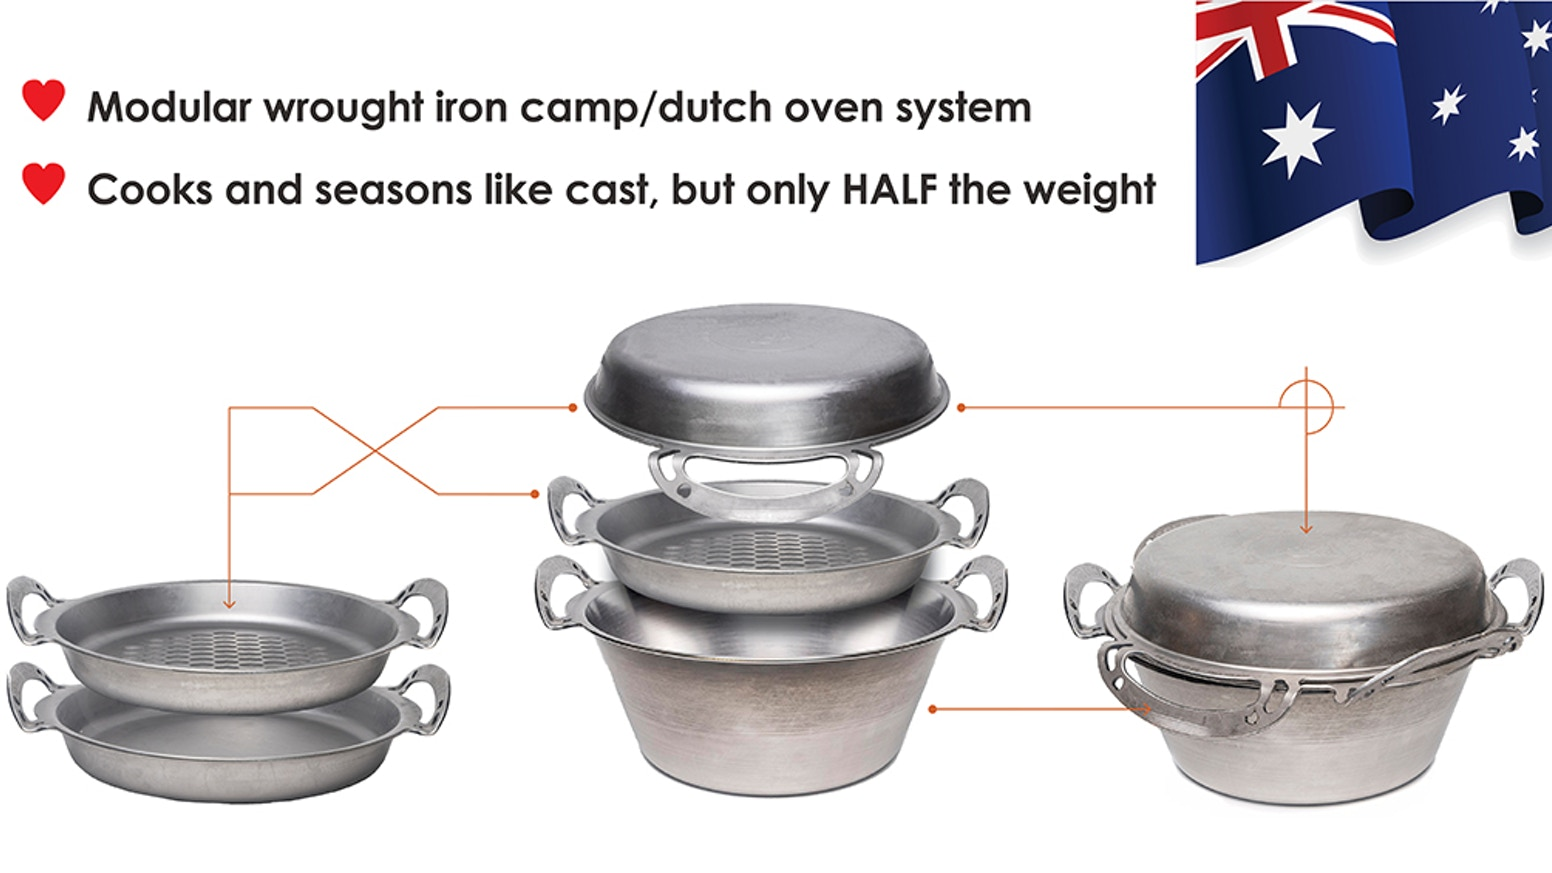 Legendary Aussie-made pans go BIG! Limited First Edition 35cm Flaming Skillet and Deepa Camp/Dutch Oven. Indestructible WROUGHT iron.